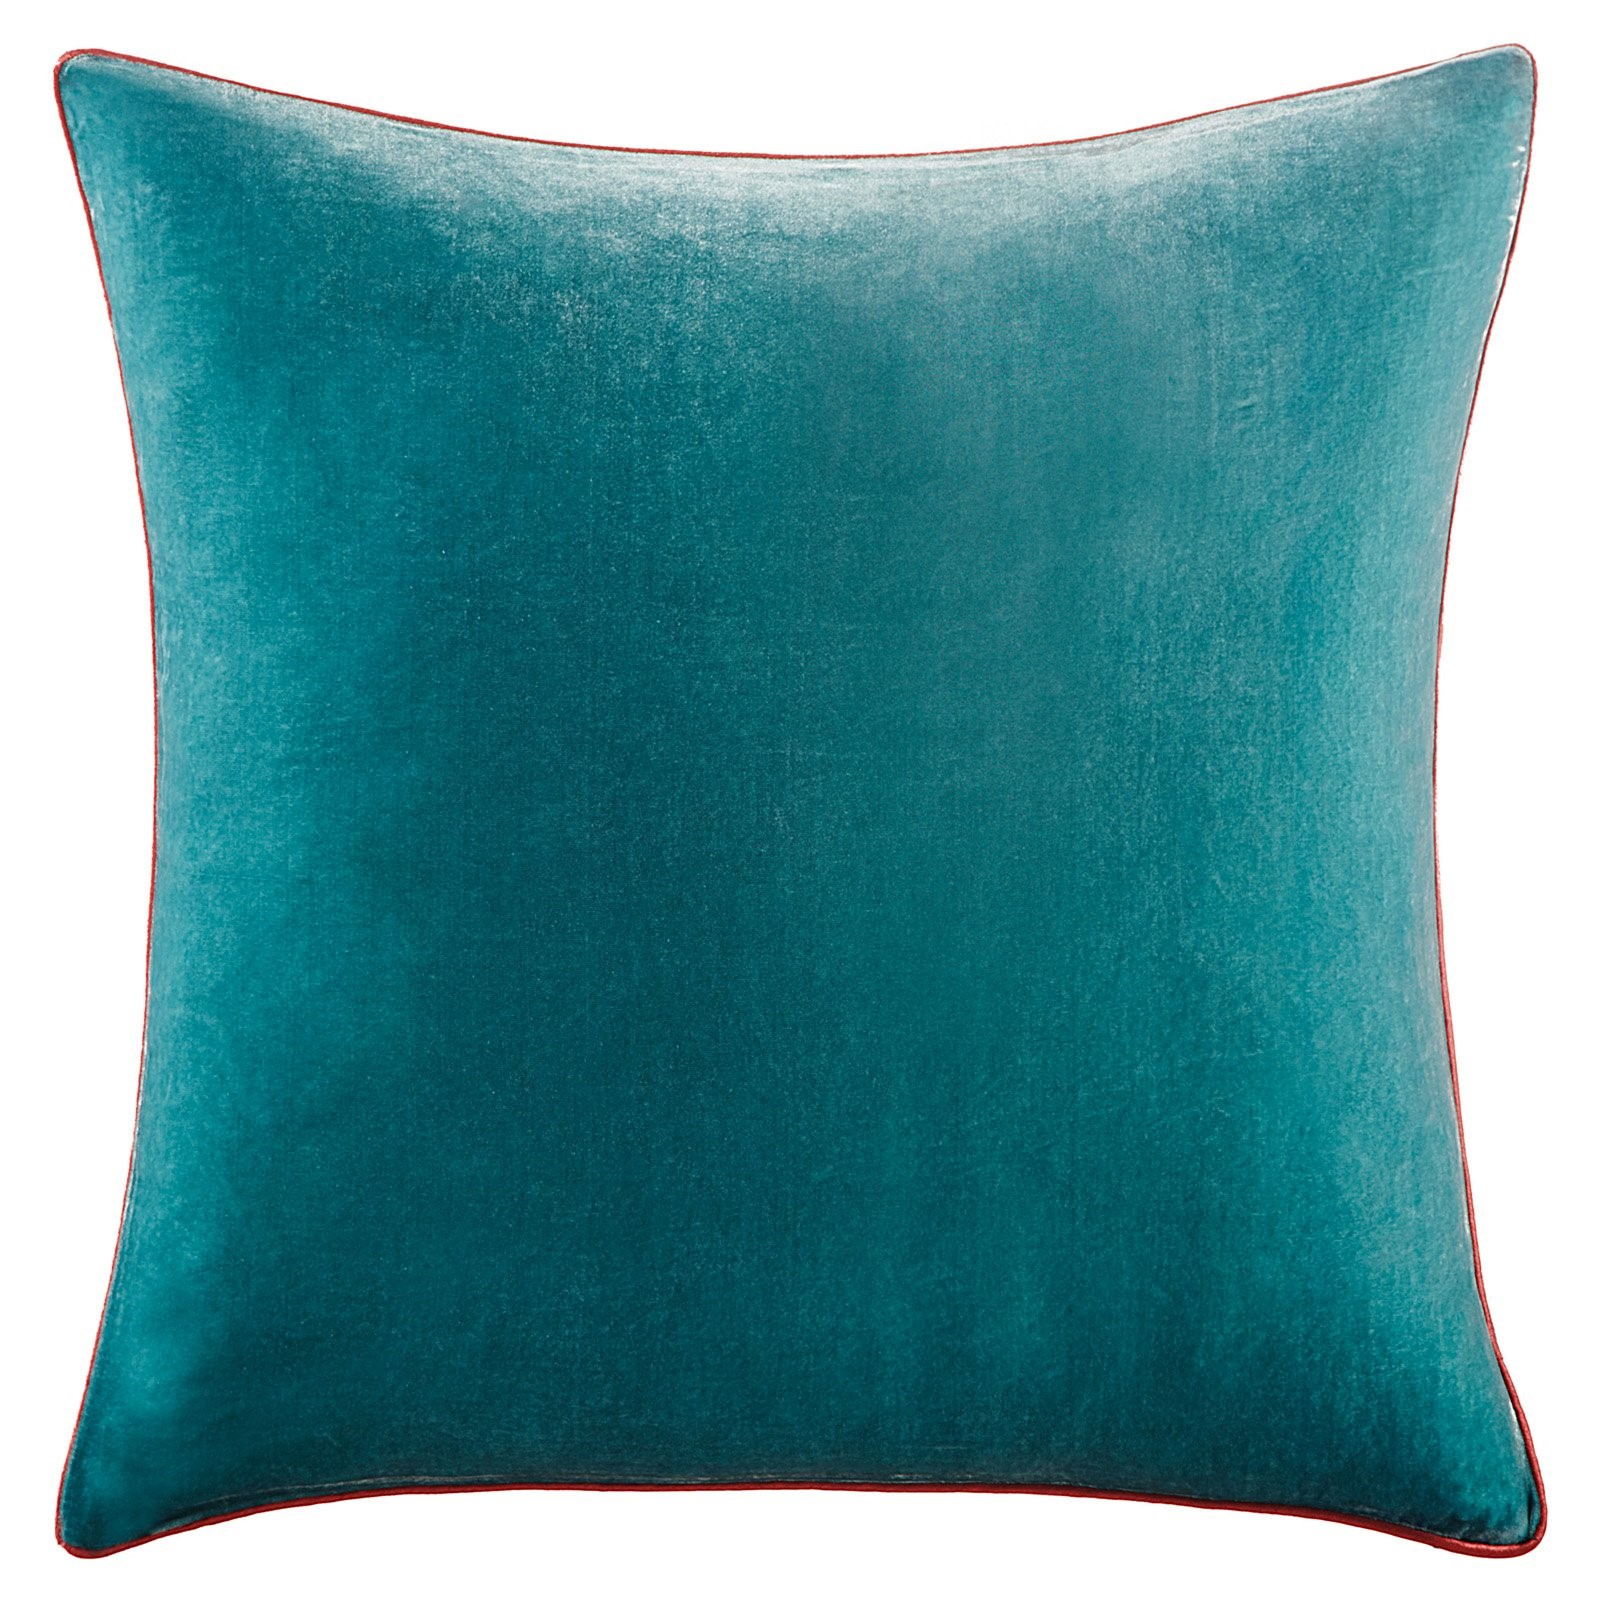 Poetic Wanderlust By Tracy Porter Bronwyn Solid Decorative Throw Pillow